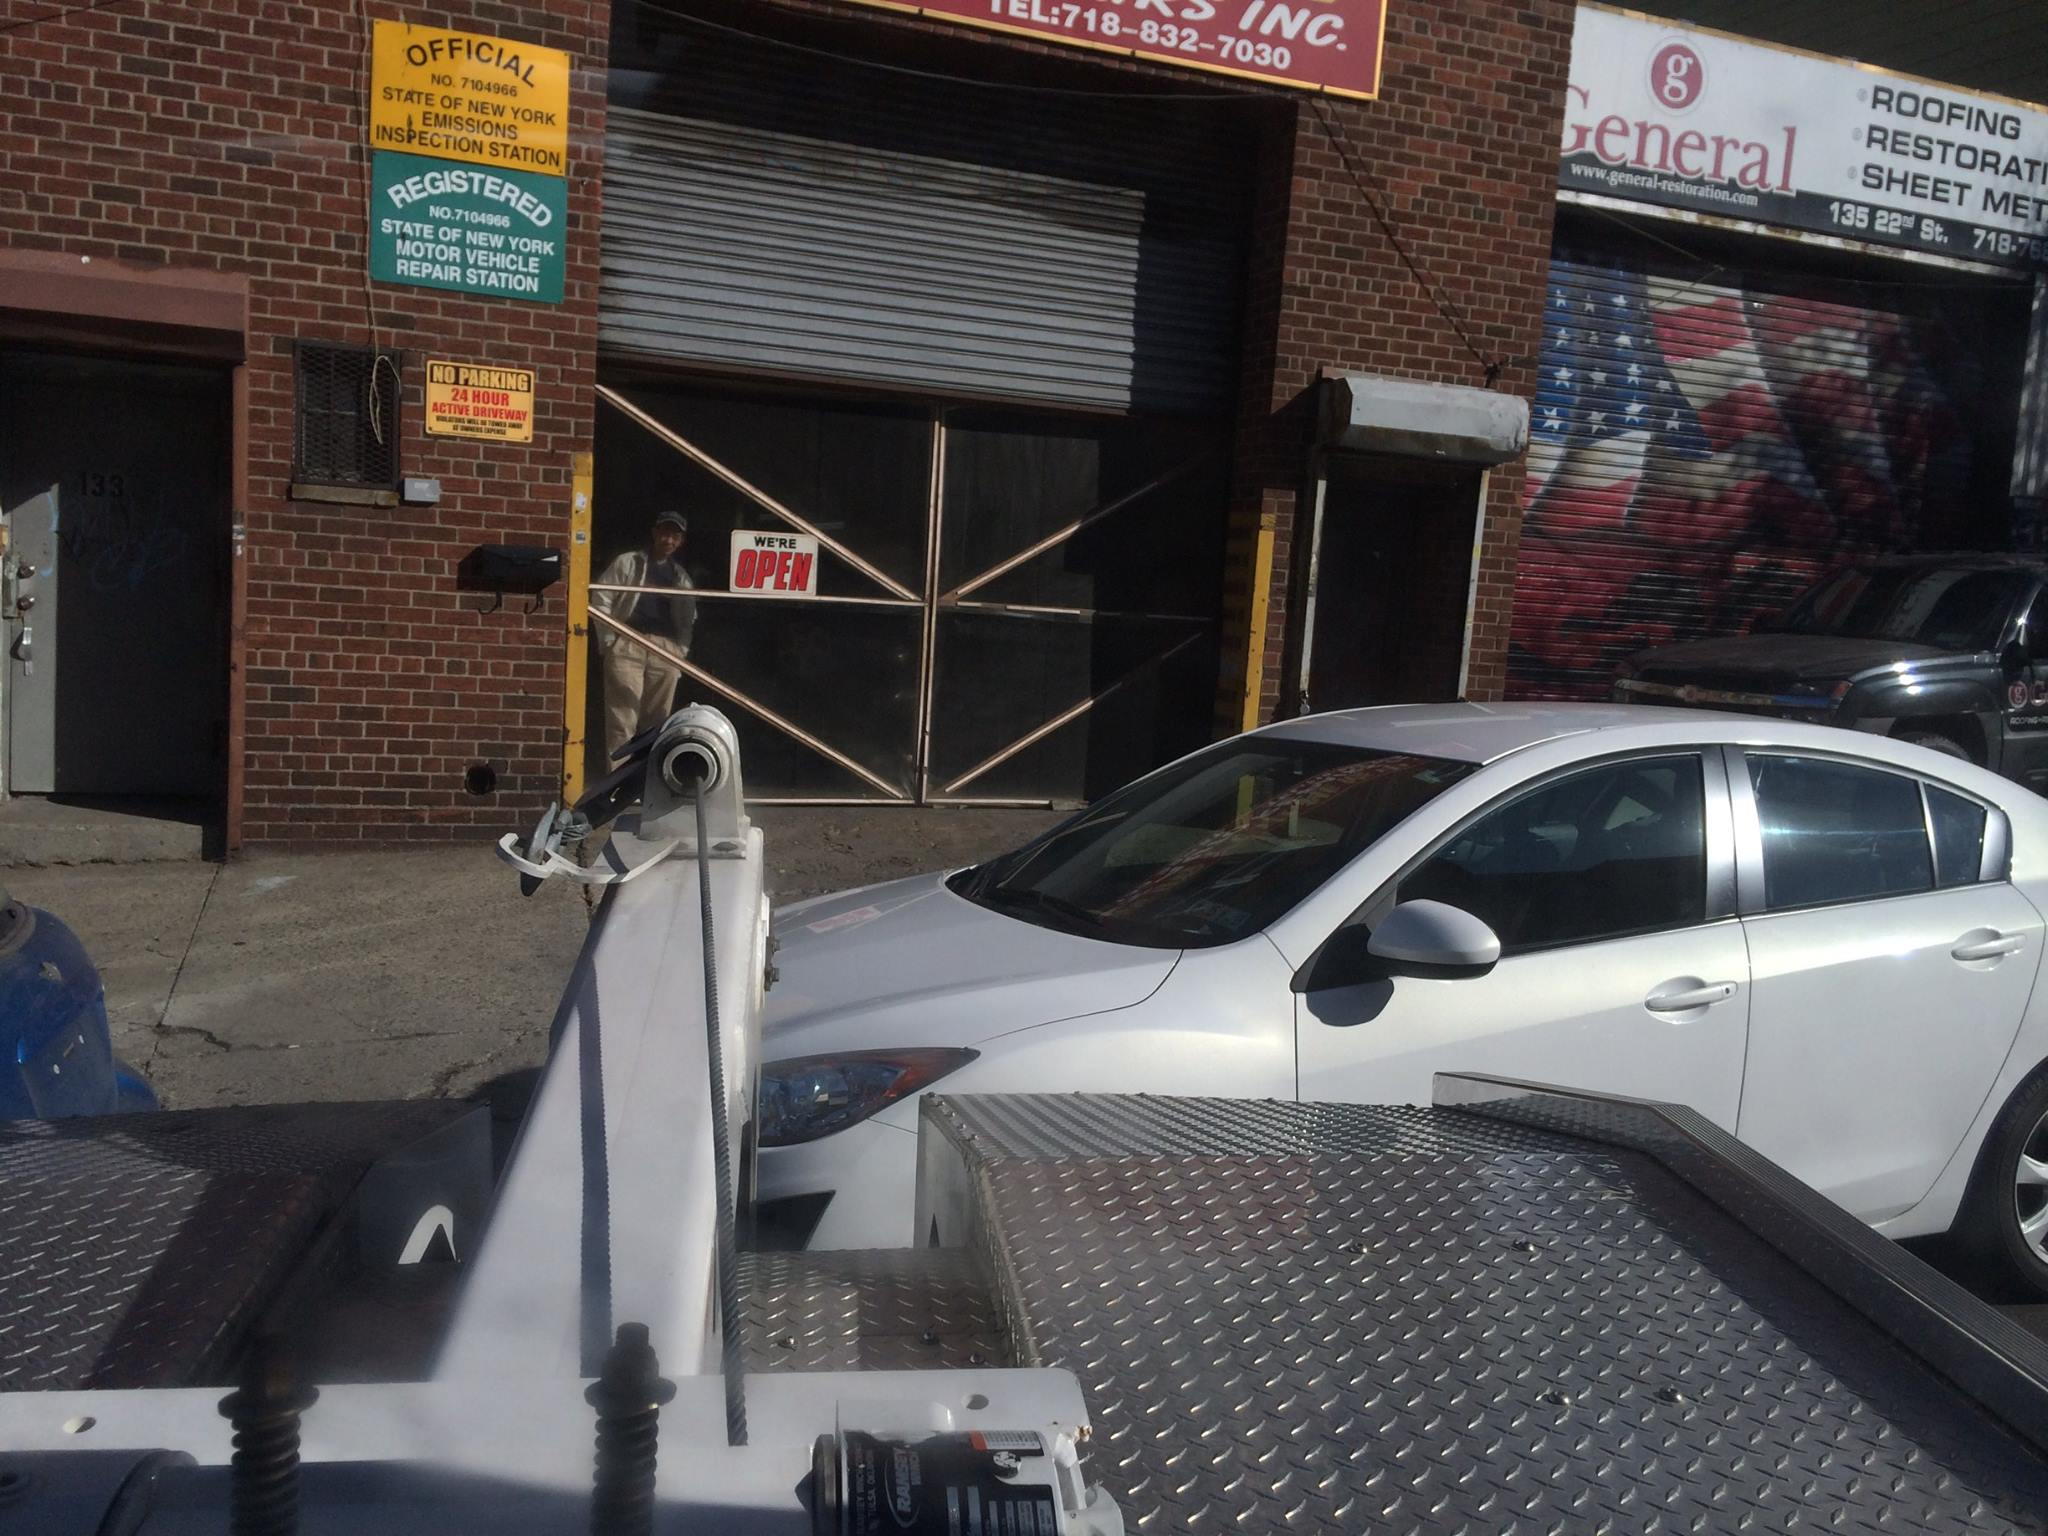 Motor vehicle staten island ny hours for Department of motor vehicles brooklyn ny